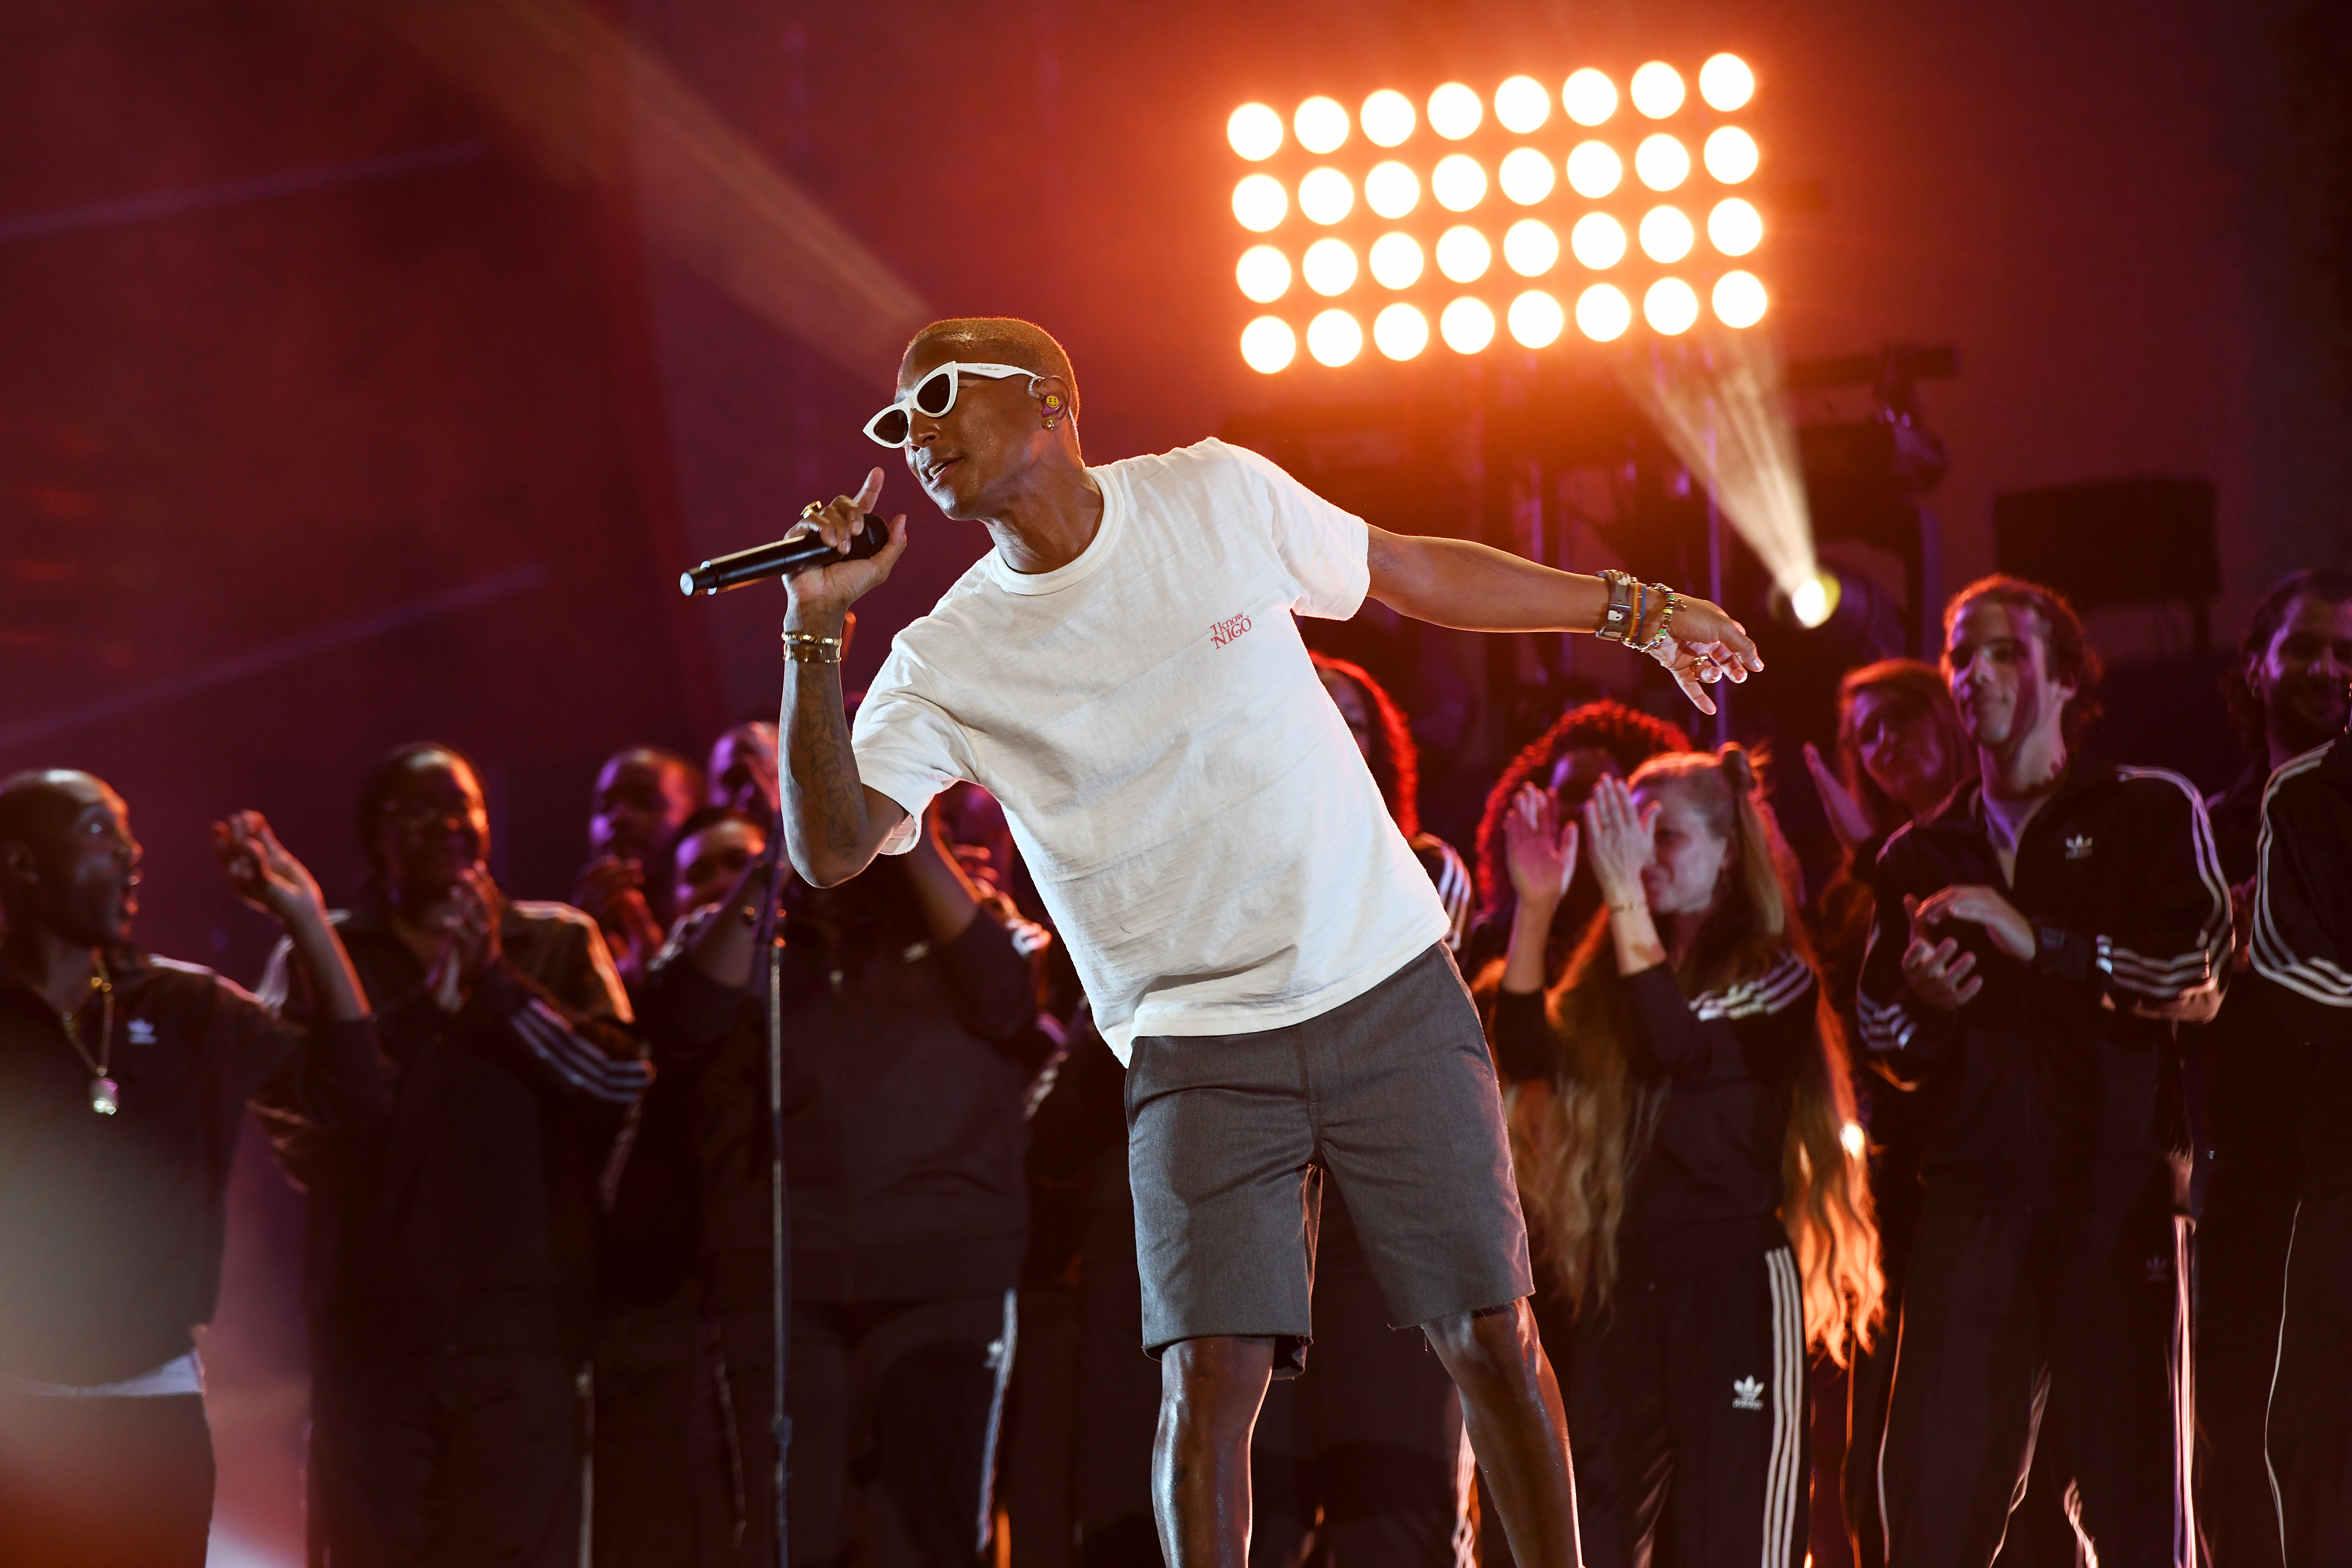 NEW YORK, NEW YORK - SEPTEMBER 28: Pharrell Williams performs onstage during the 2019 Global Citizen Festival: Power The Movement in Central Park on September 28, 2019 in New York City. (Photo by Noam Galai/Getty Images for Global Citizen)